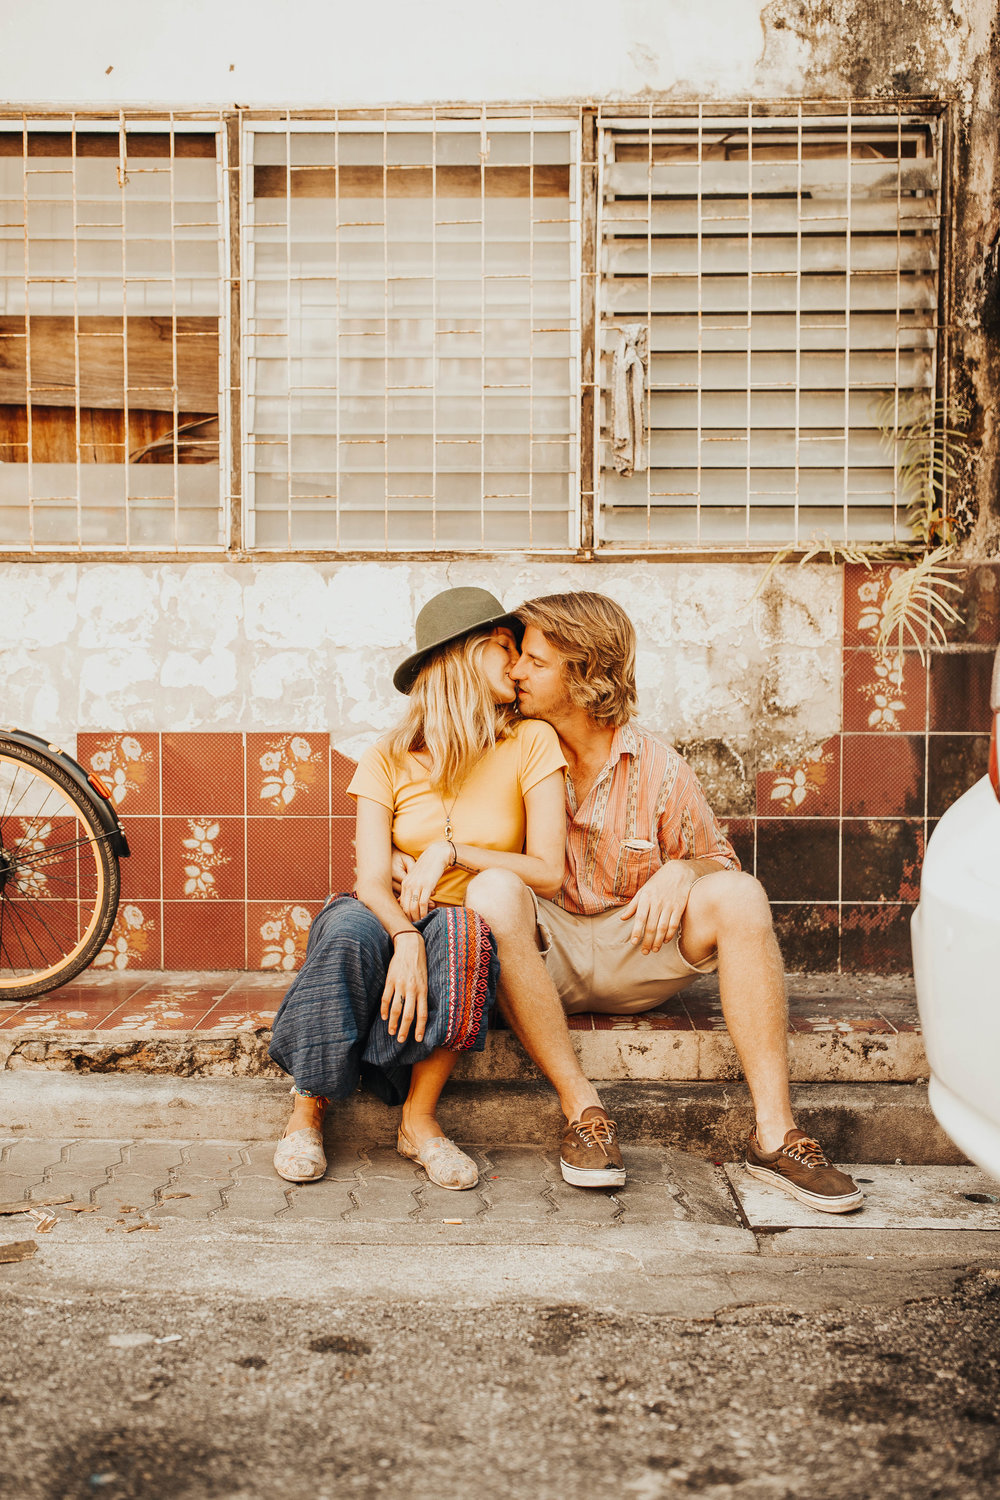 Julie and Will Old Town Phuket Couples Session 24.jpg